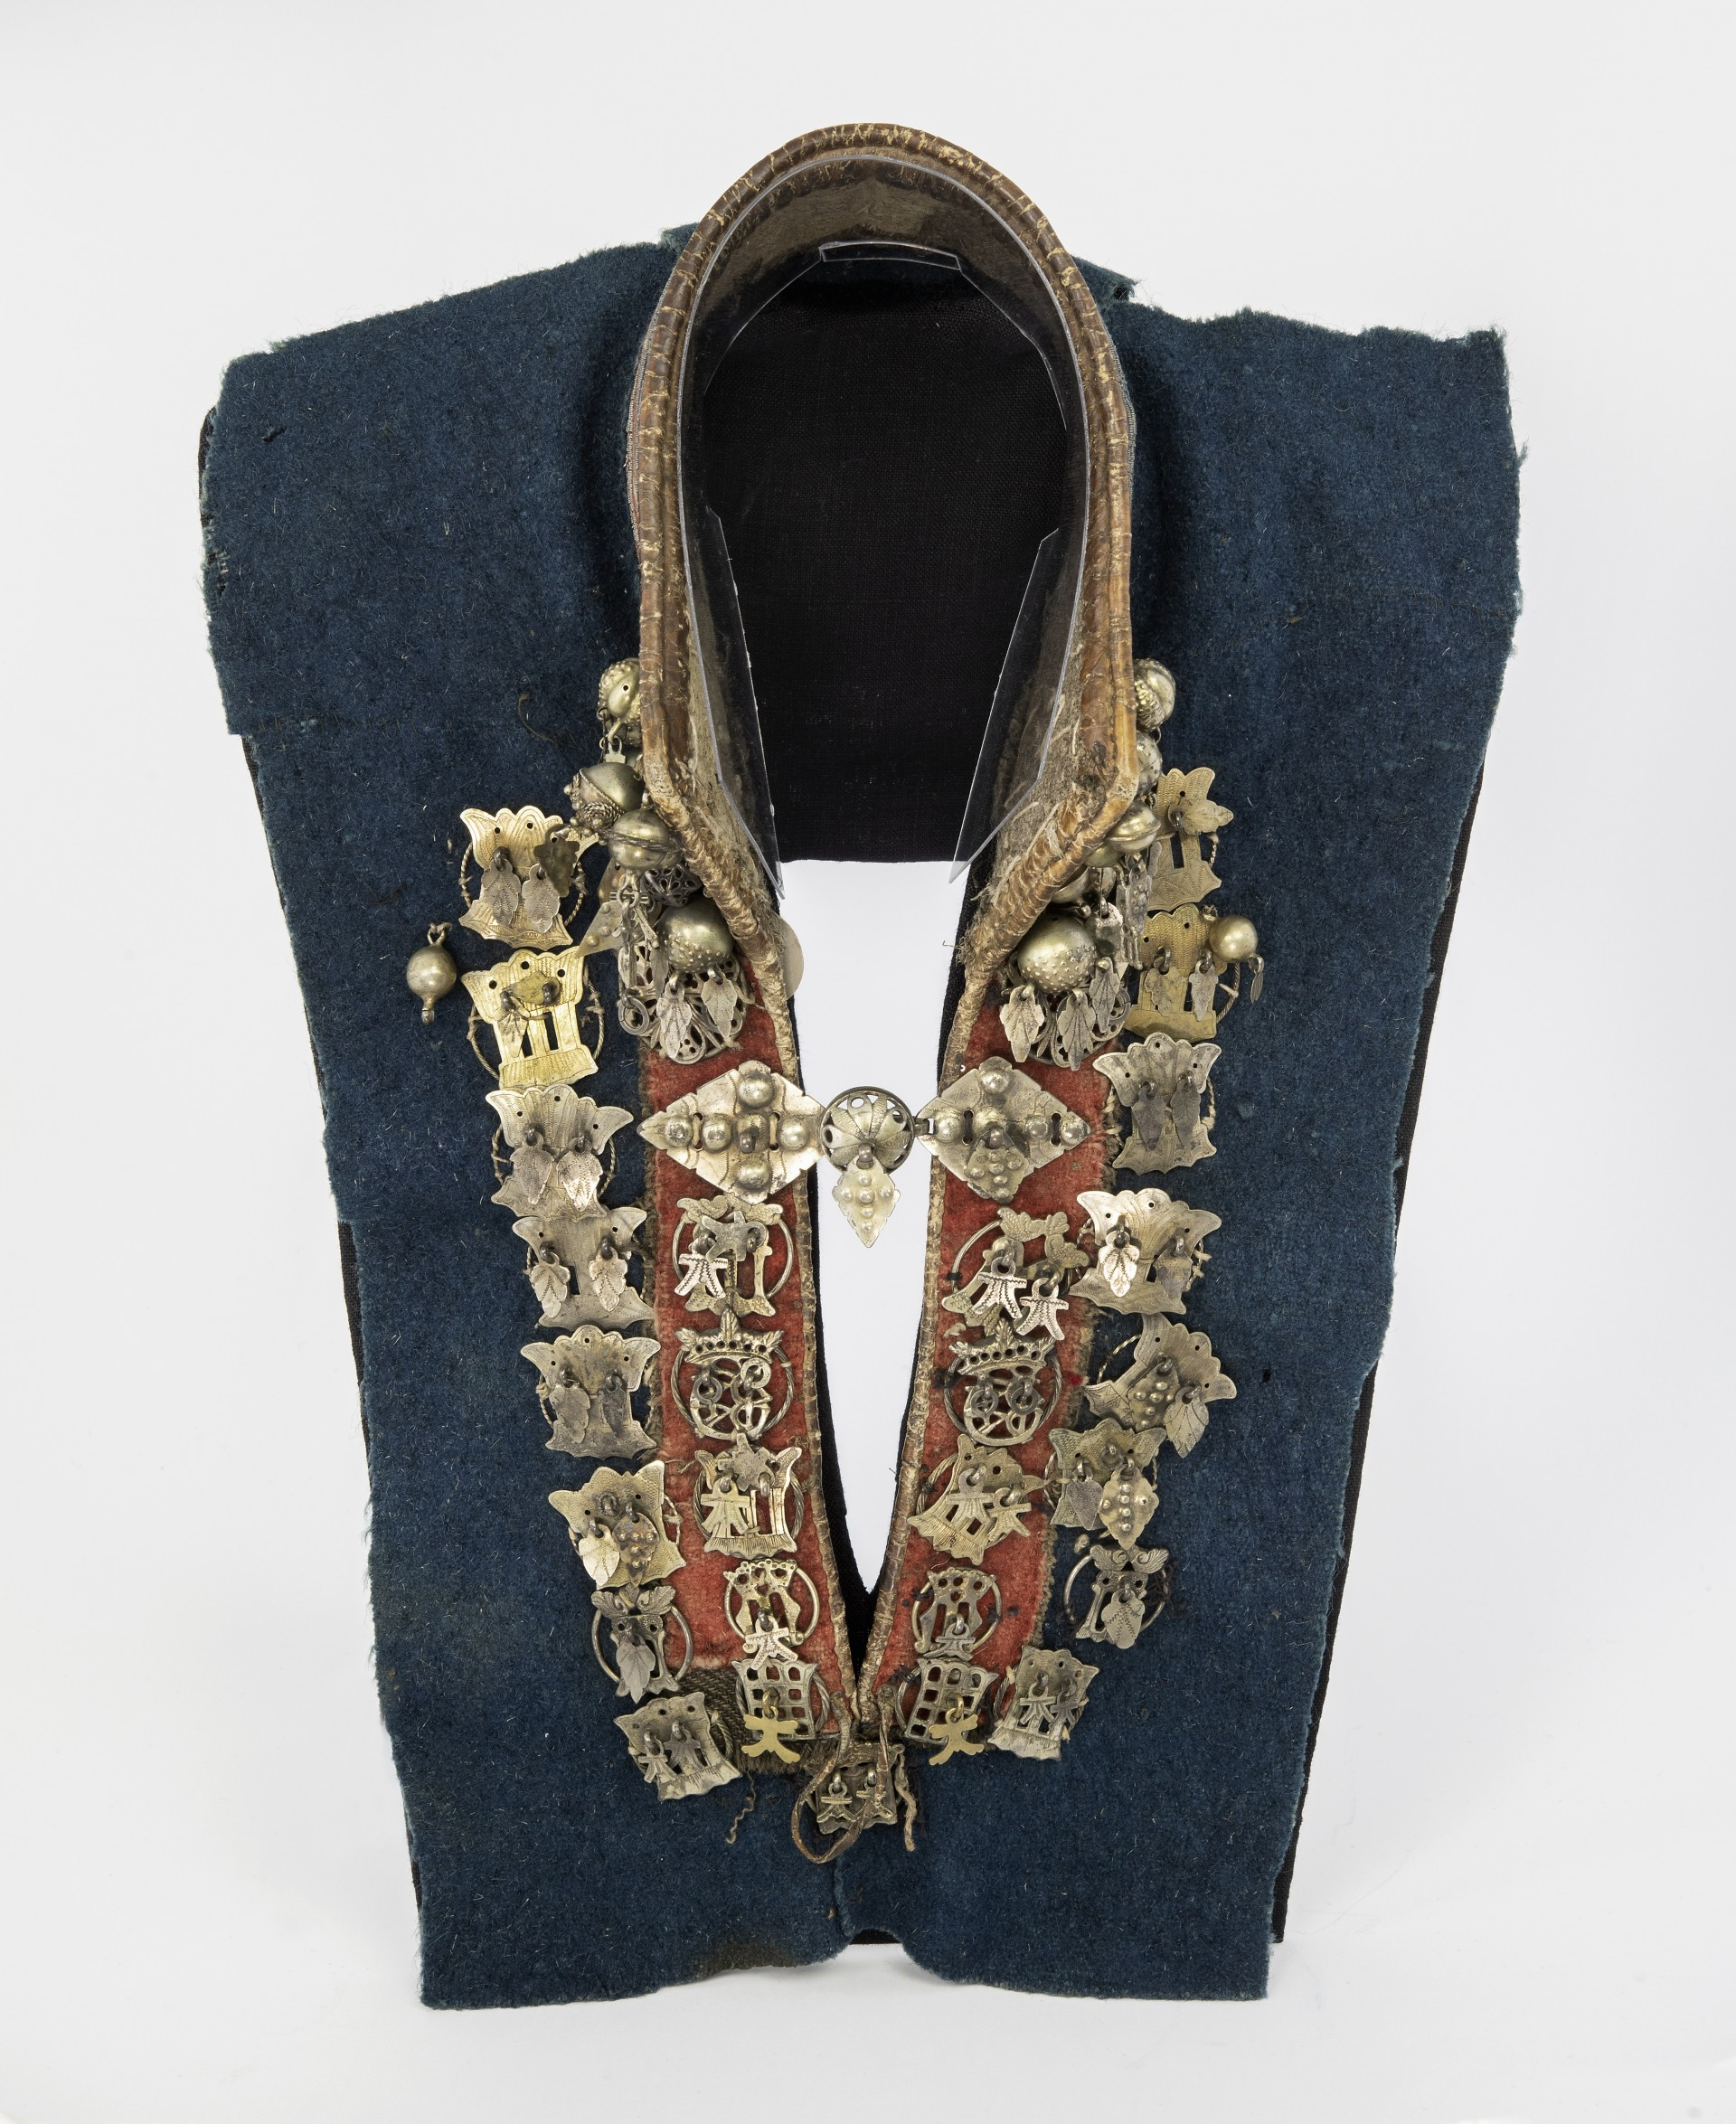 Sami silver collar. Sami women wore a silver collar at weddings and on other festive occasions. Pendants of parcel-gilt silver. Mandarin collar with pewter embroidery. Sweden, Lapland. Acquired by Nordiska museet 1903. NM.0096618. Photo: Nordiska museet